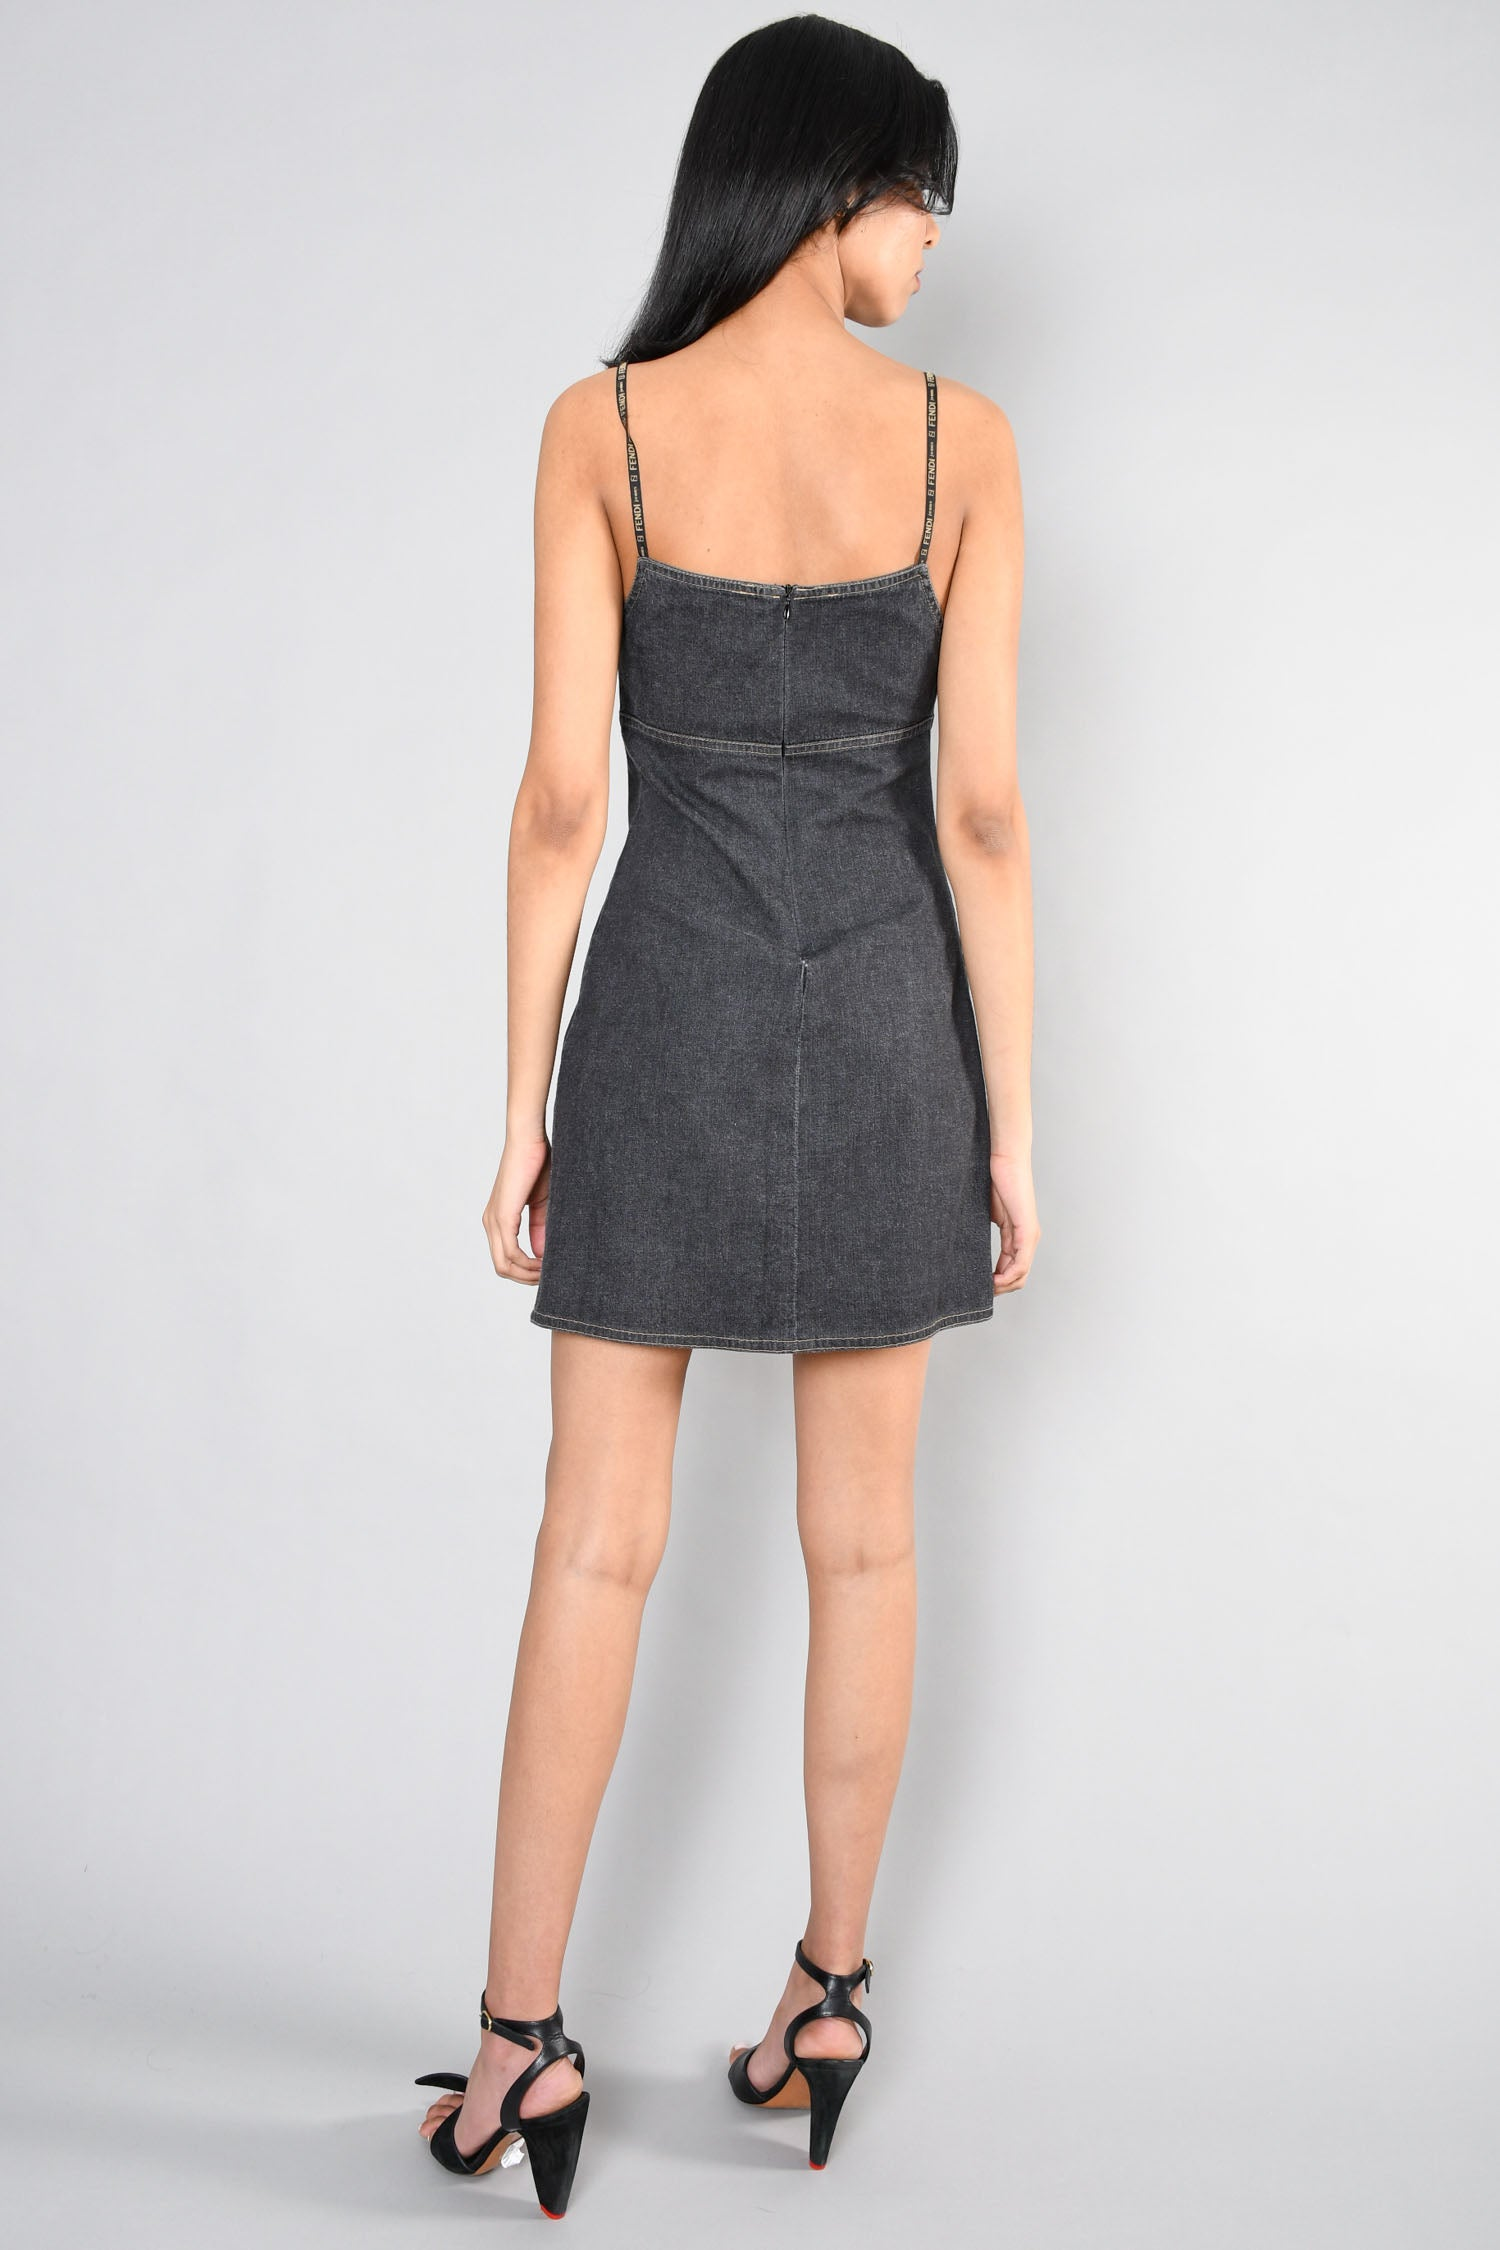 Fendi Jeans Vintage Dark Grey Denim Logo Strap Mini Dress